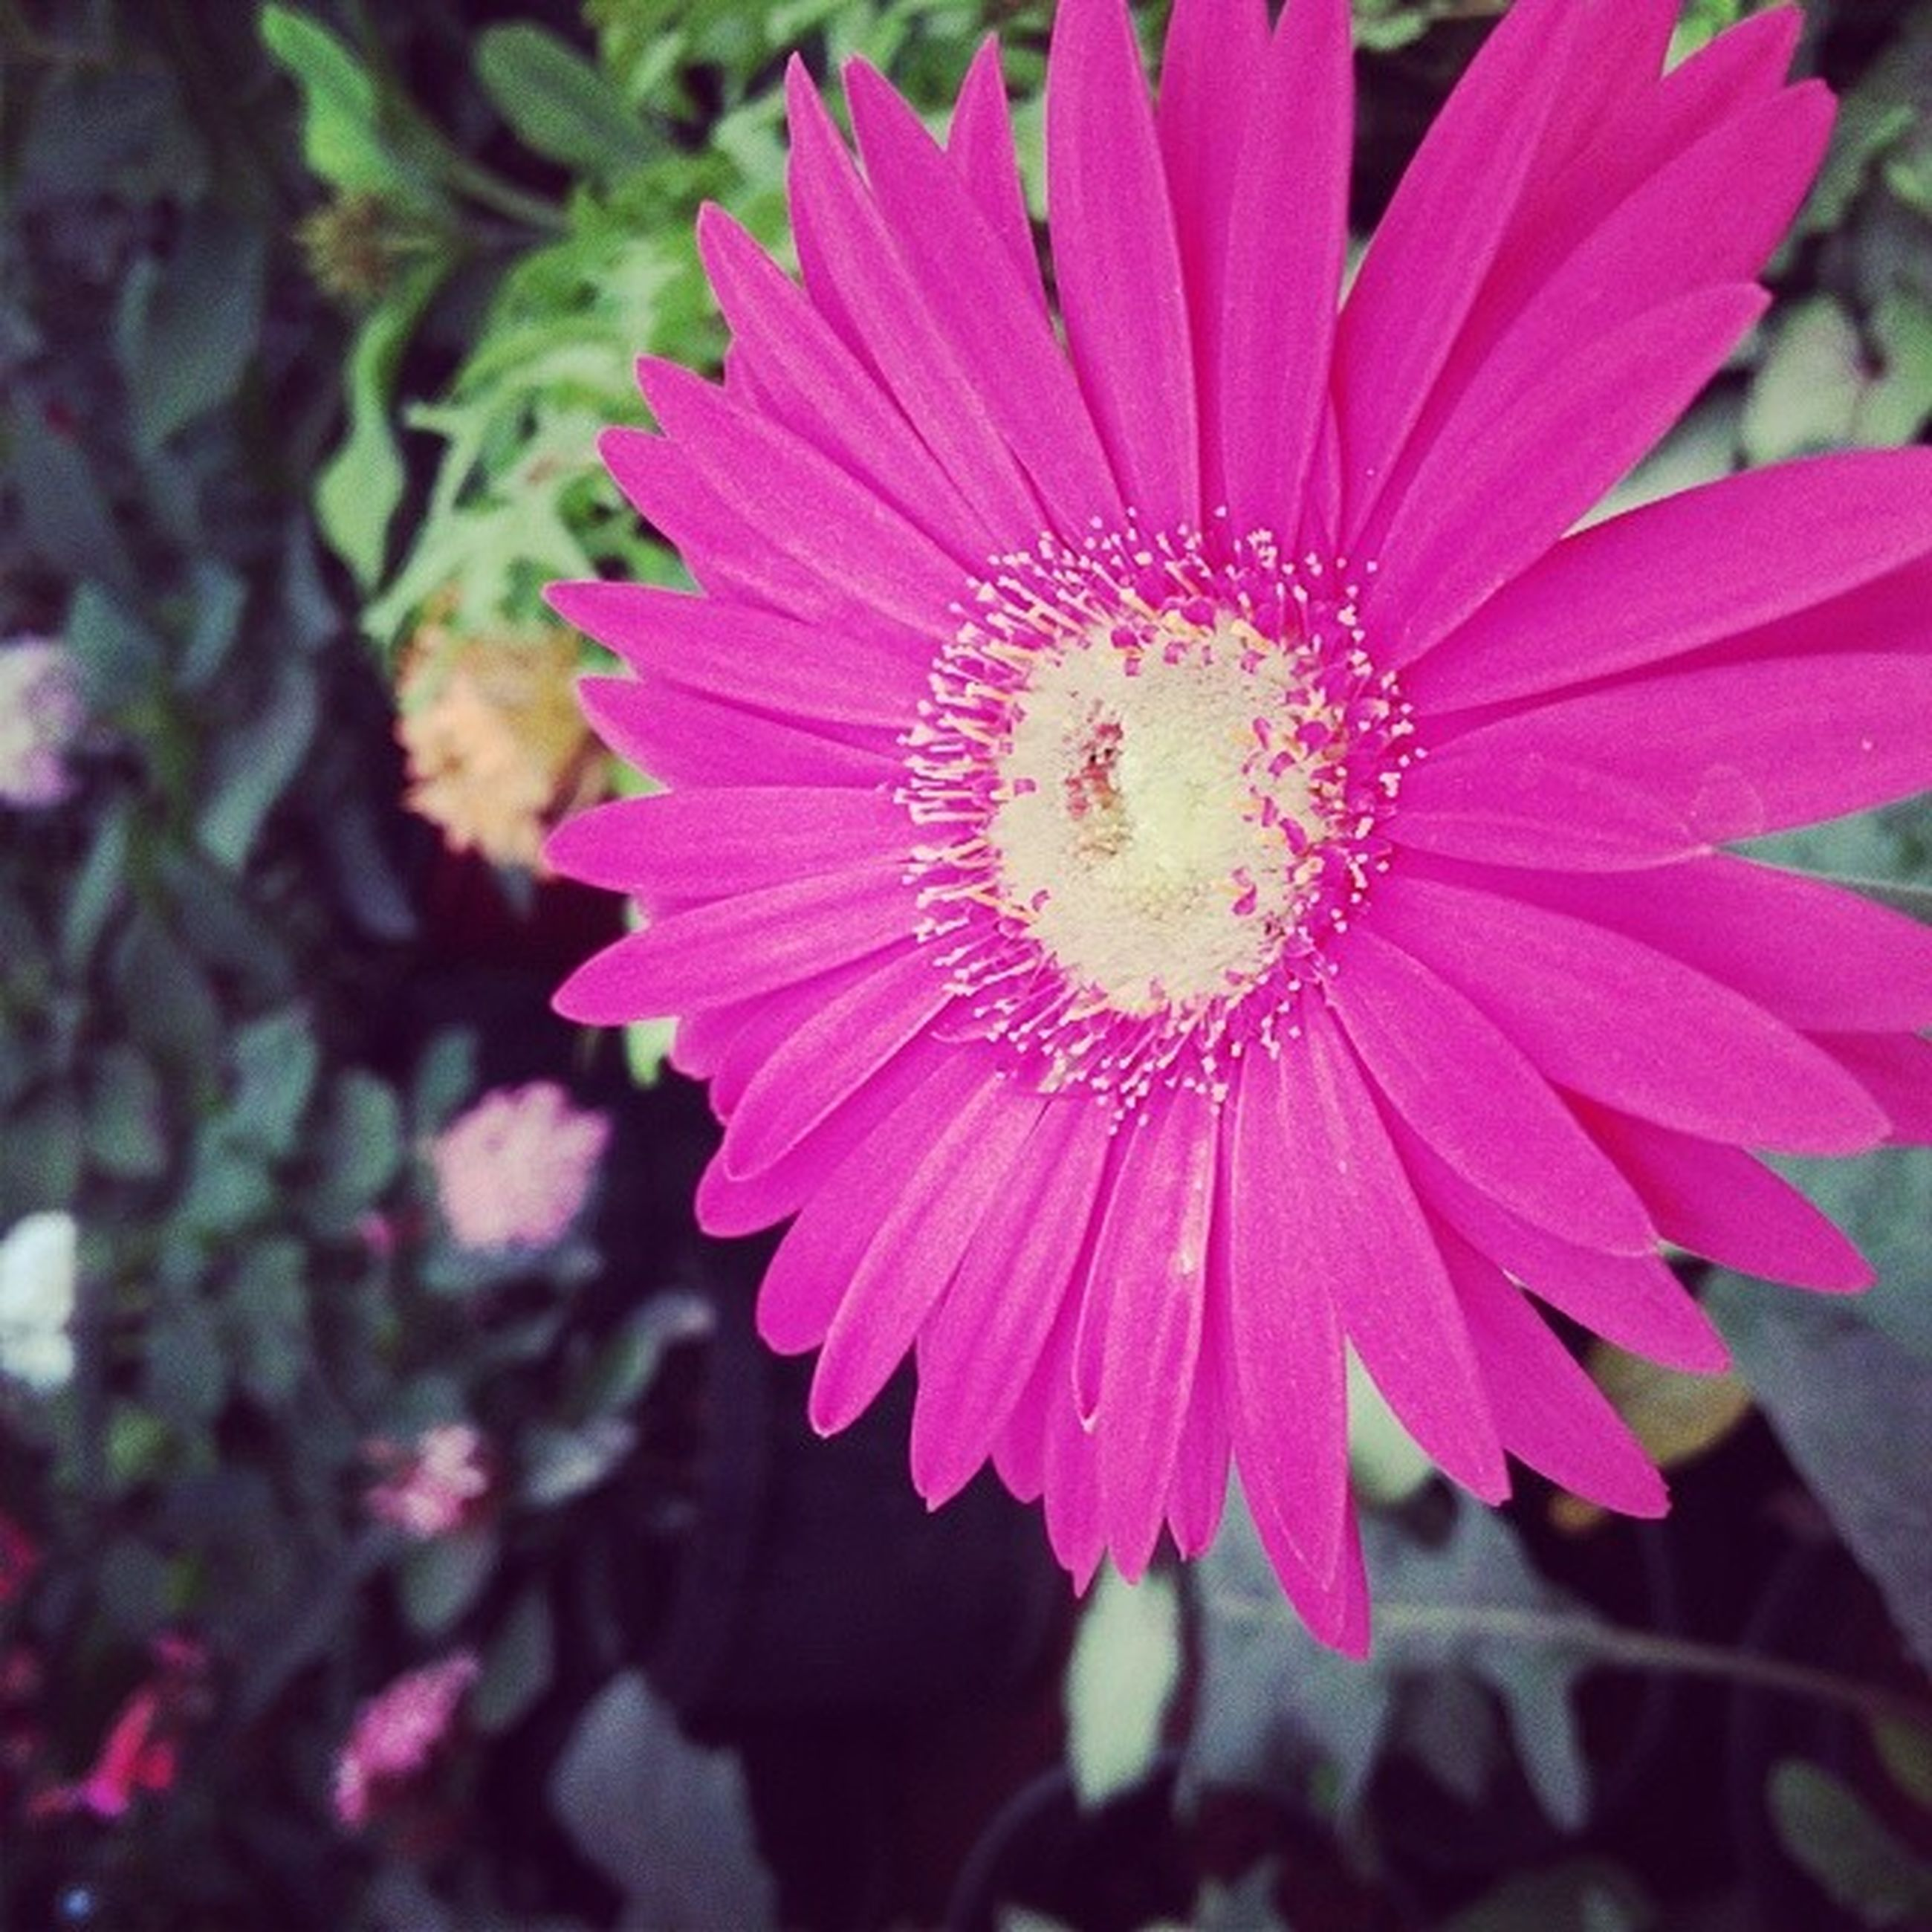 flower, petal, flower head, freshness, fragility, pollen, beauty in nature, close-up, growth, single flower, blooming, focus on foreground, nature, plant, in bloom, pink color, red, stamen, outdoors, day